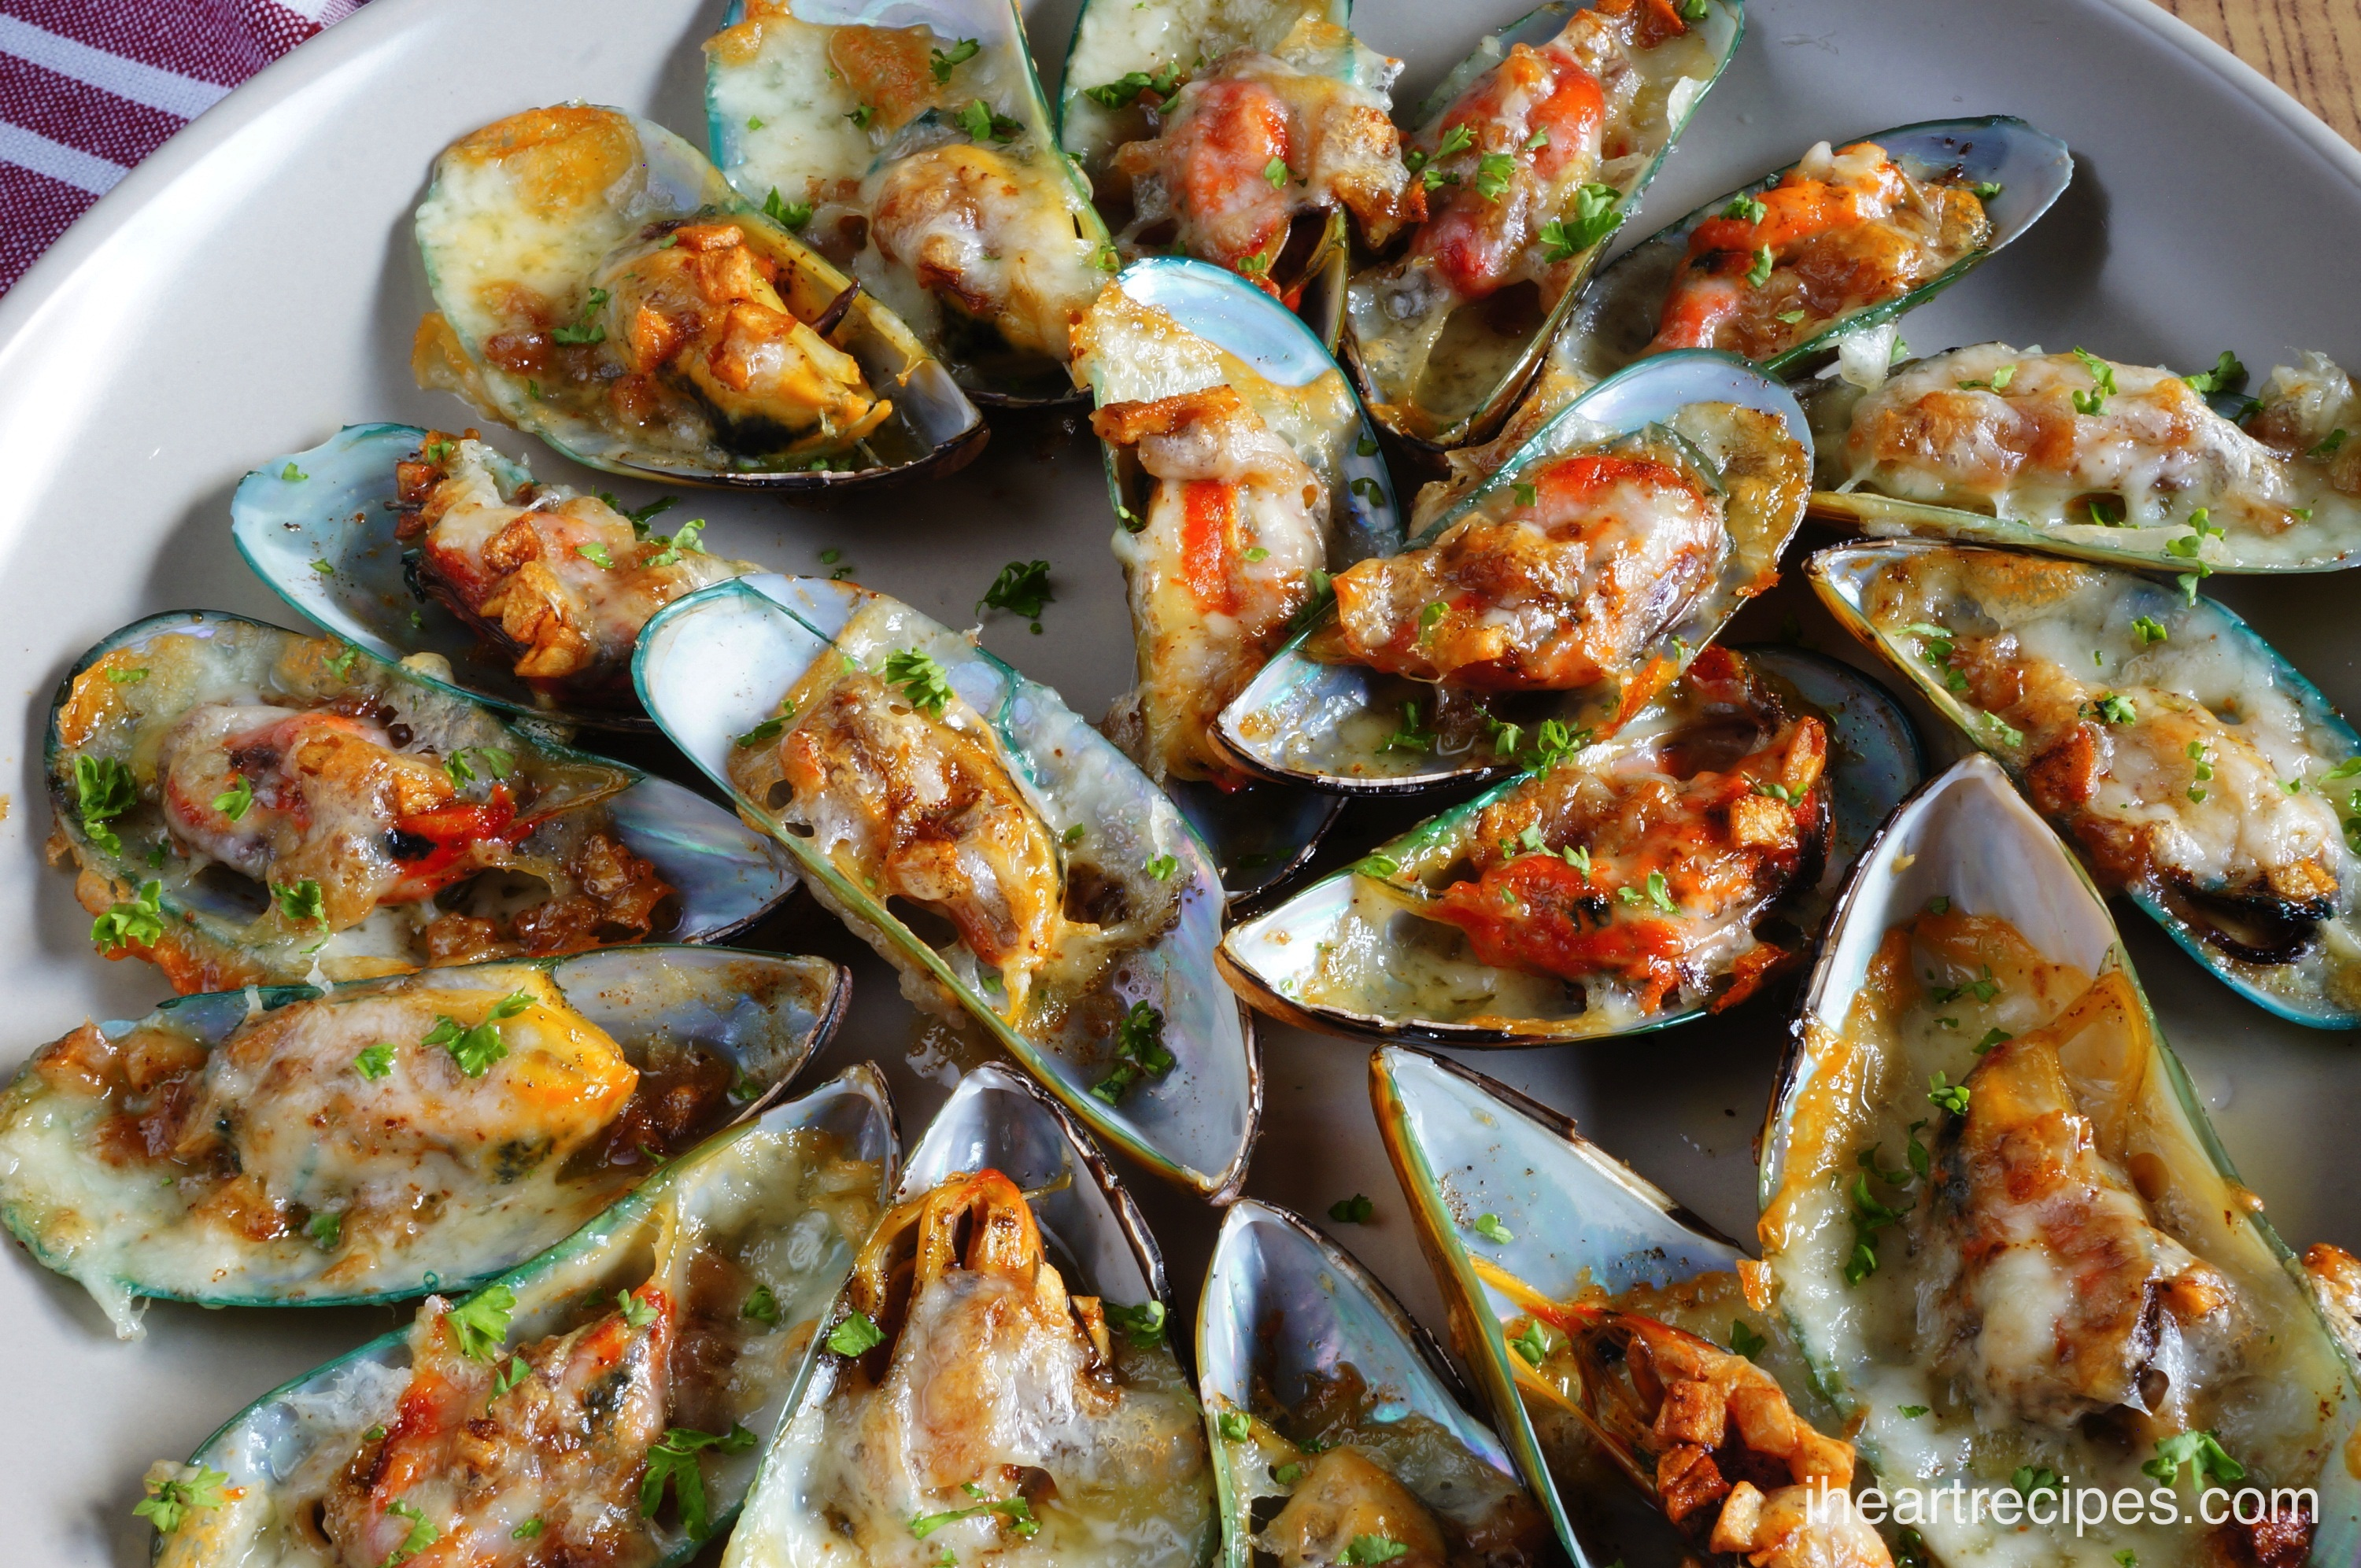 If you love seafood, you need to try this amazing recipe for Cheesy Garlic Mussels!